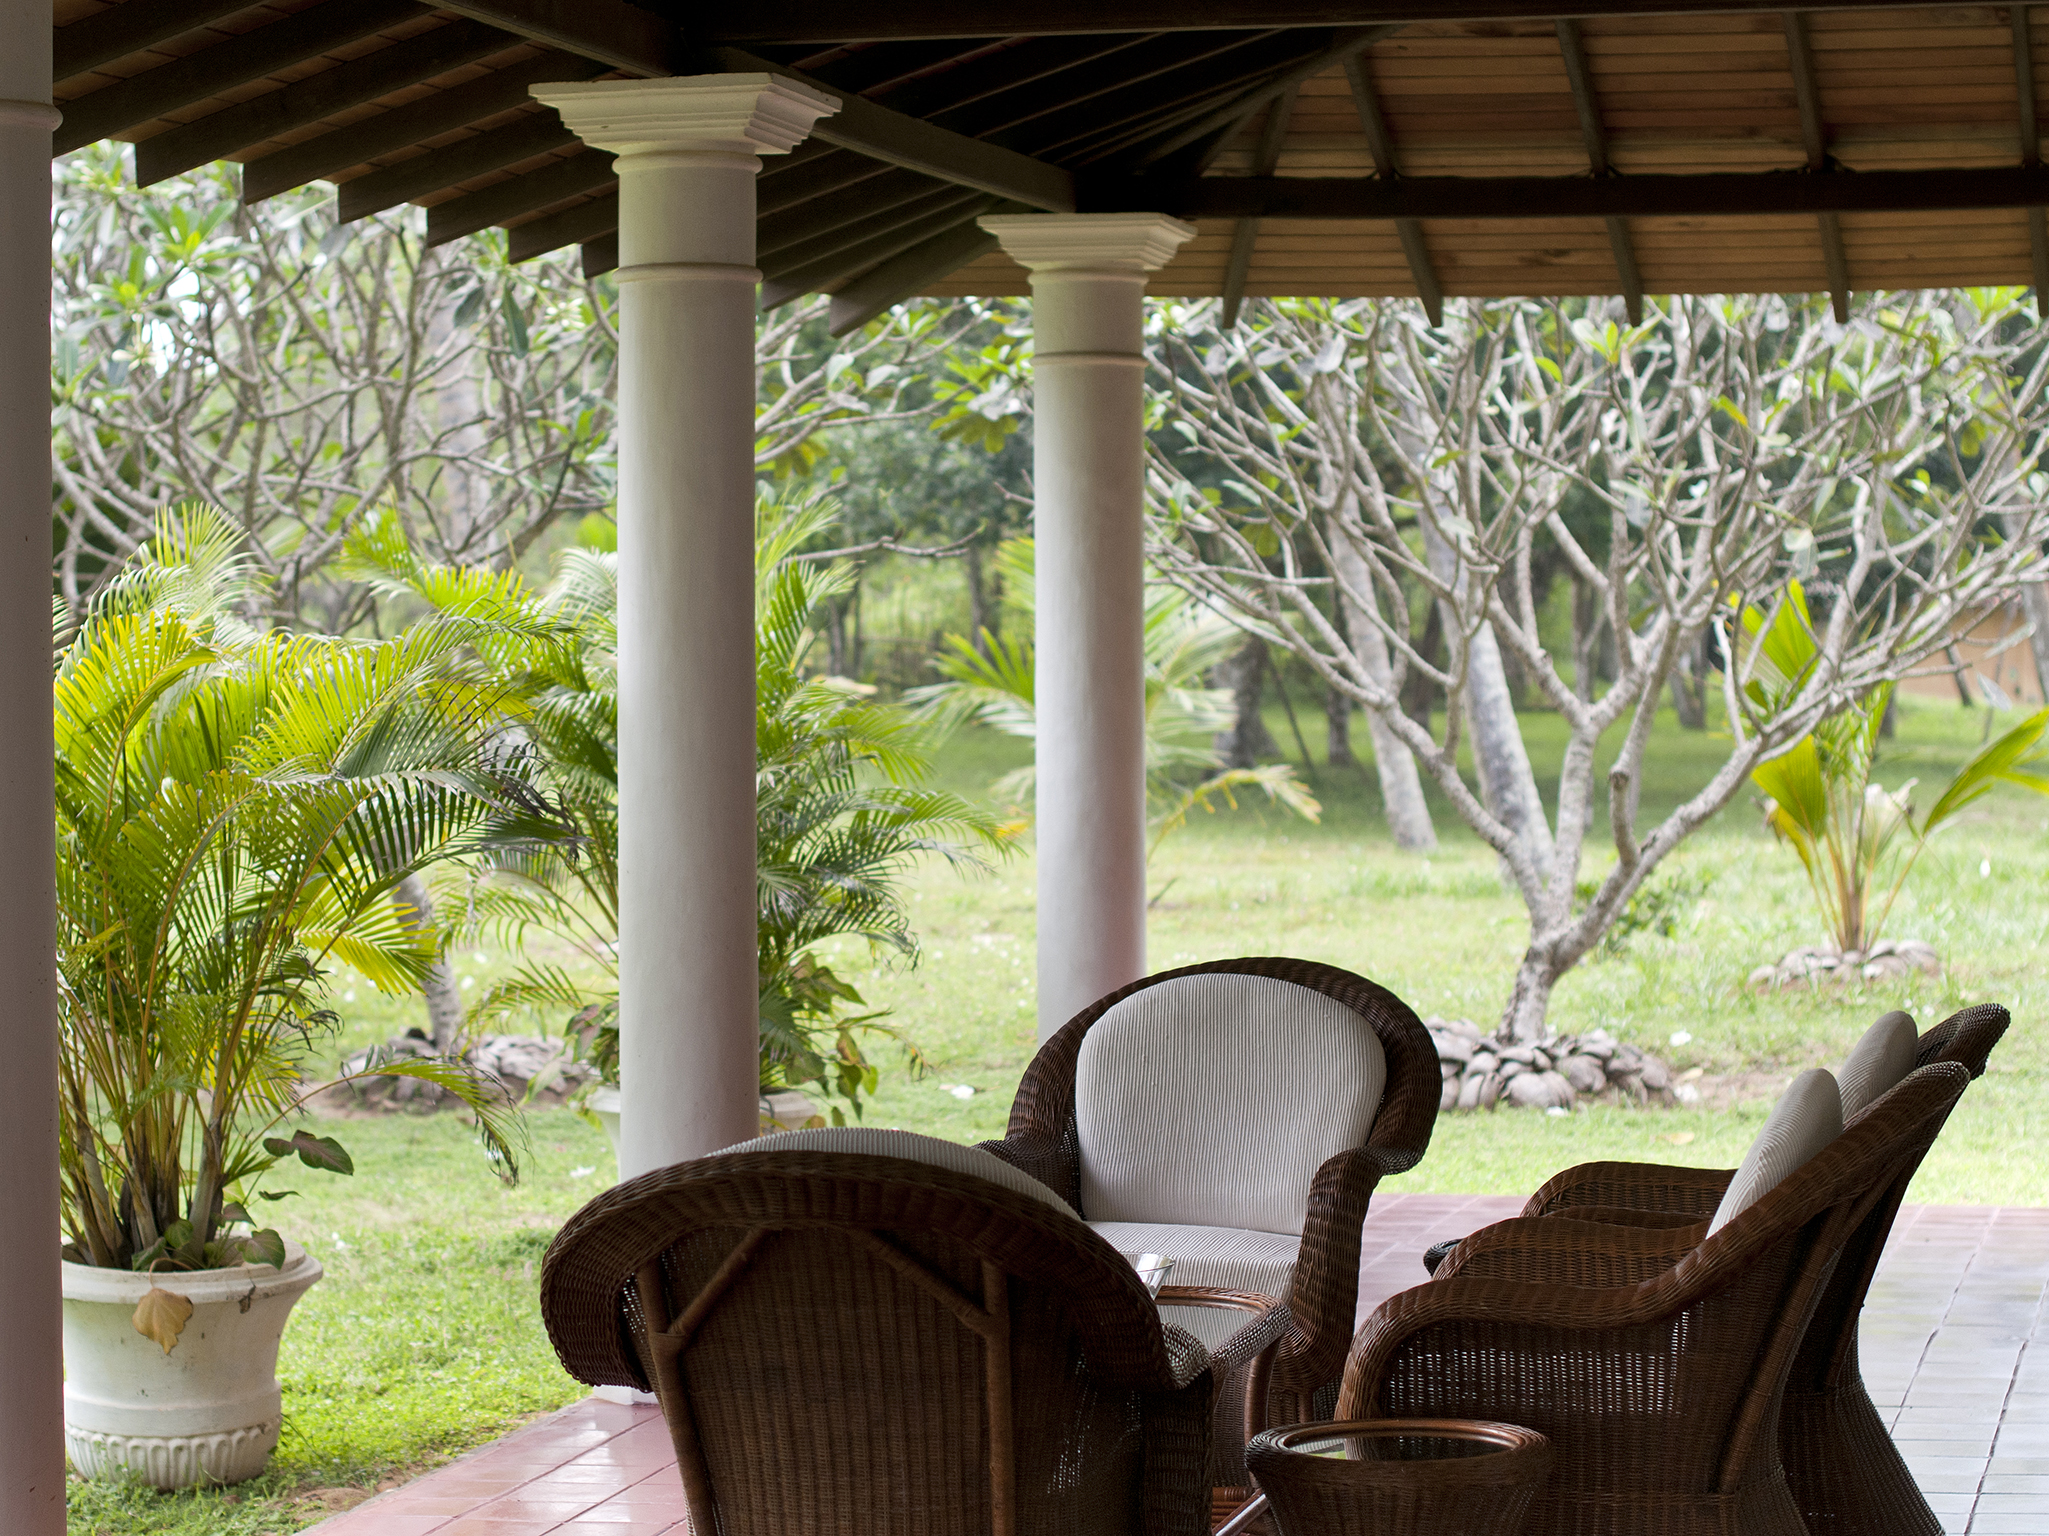 05-Oceans Edge-Tangalle - Front of house veranda chairs.jpg